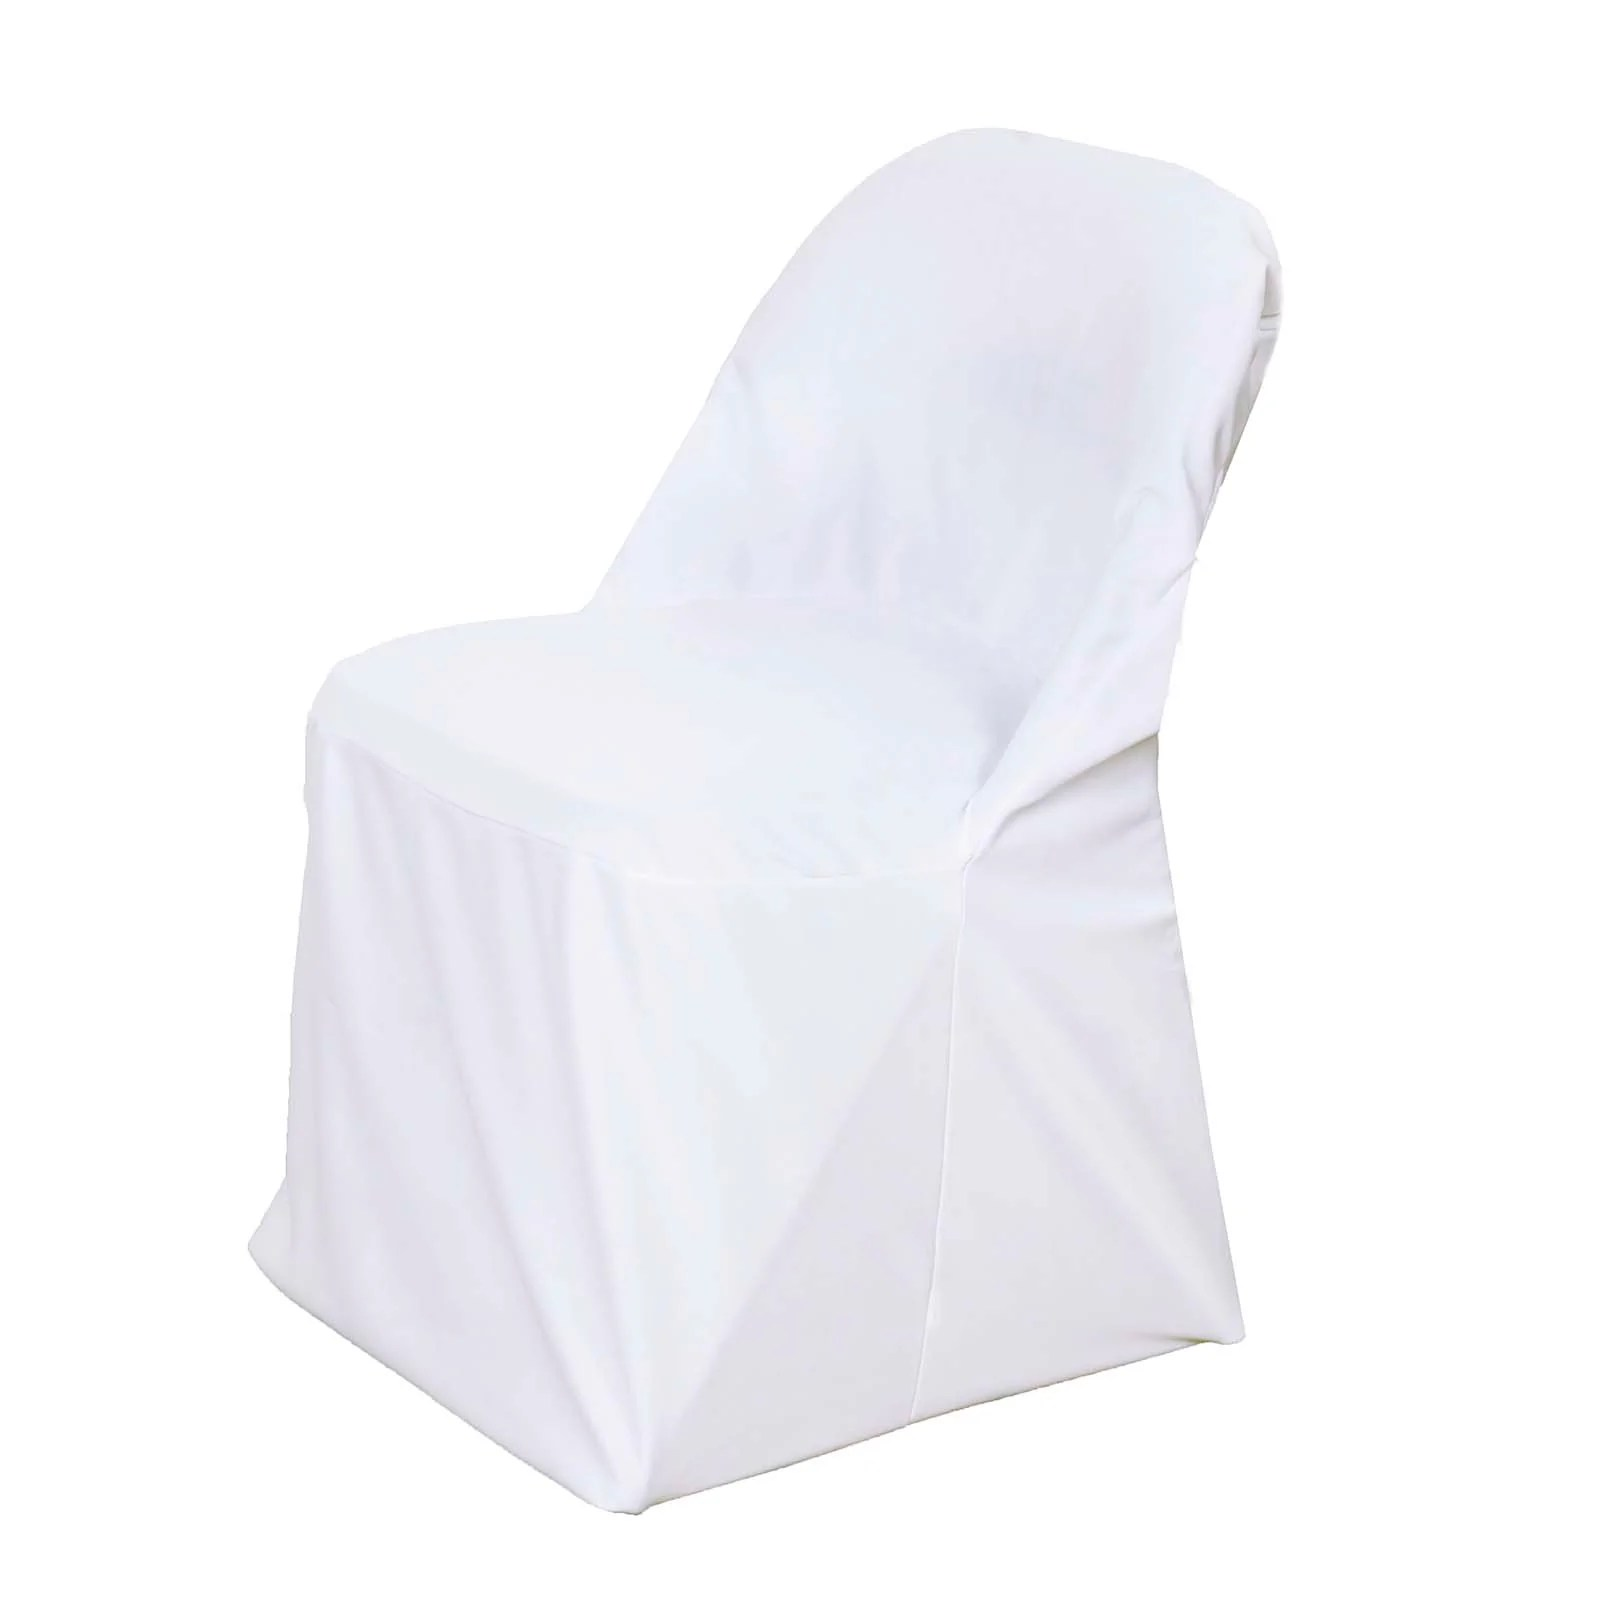 chair covers for white folding chairs office back support premium spandex scuba